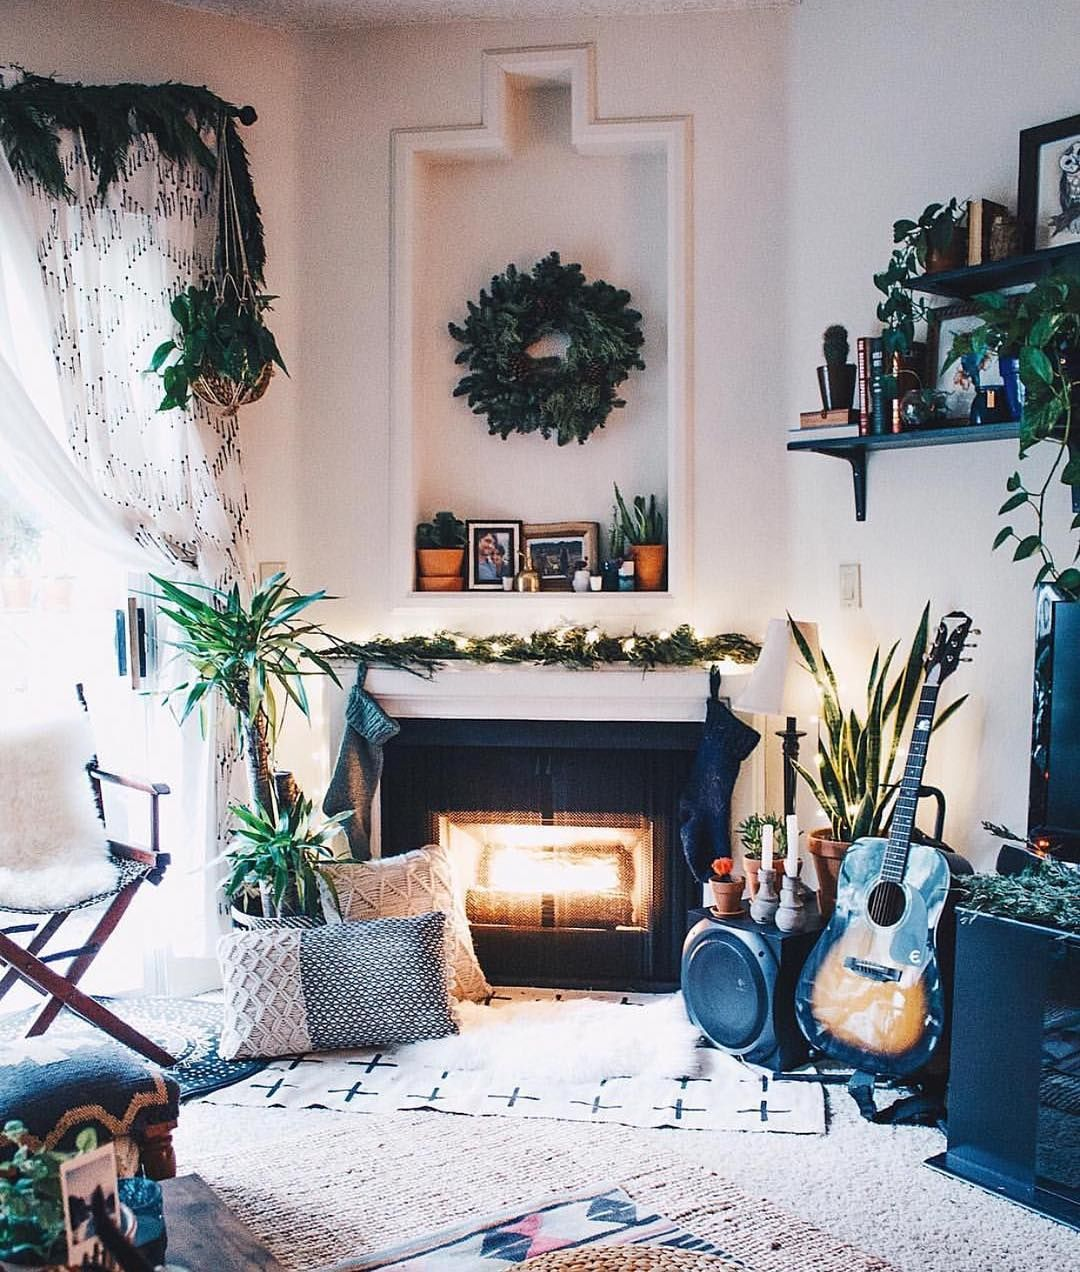 70 Inspiring Bohemian Style Living Room Decor